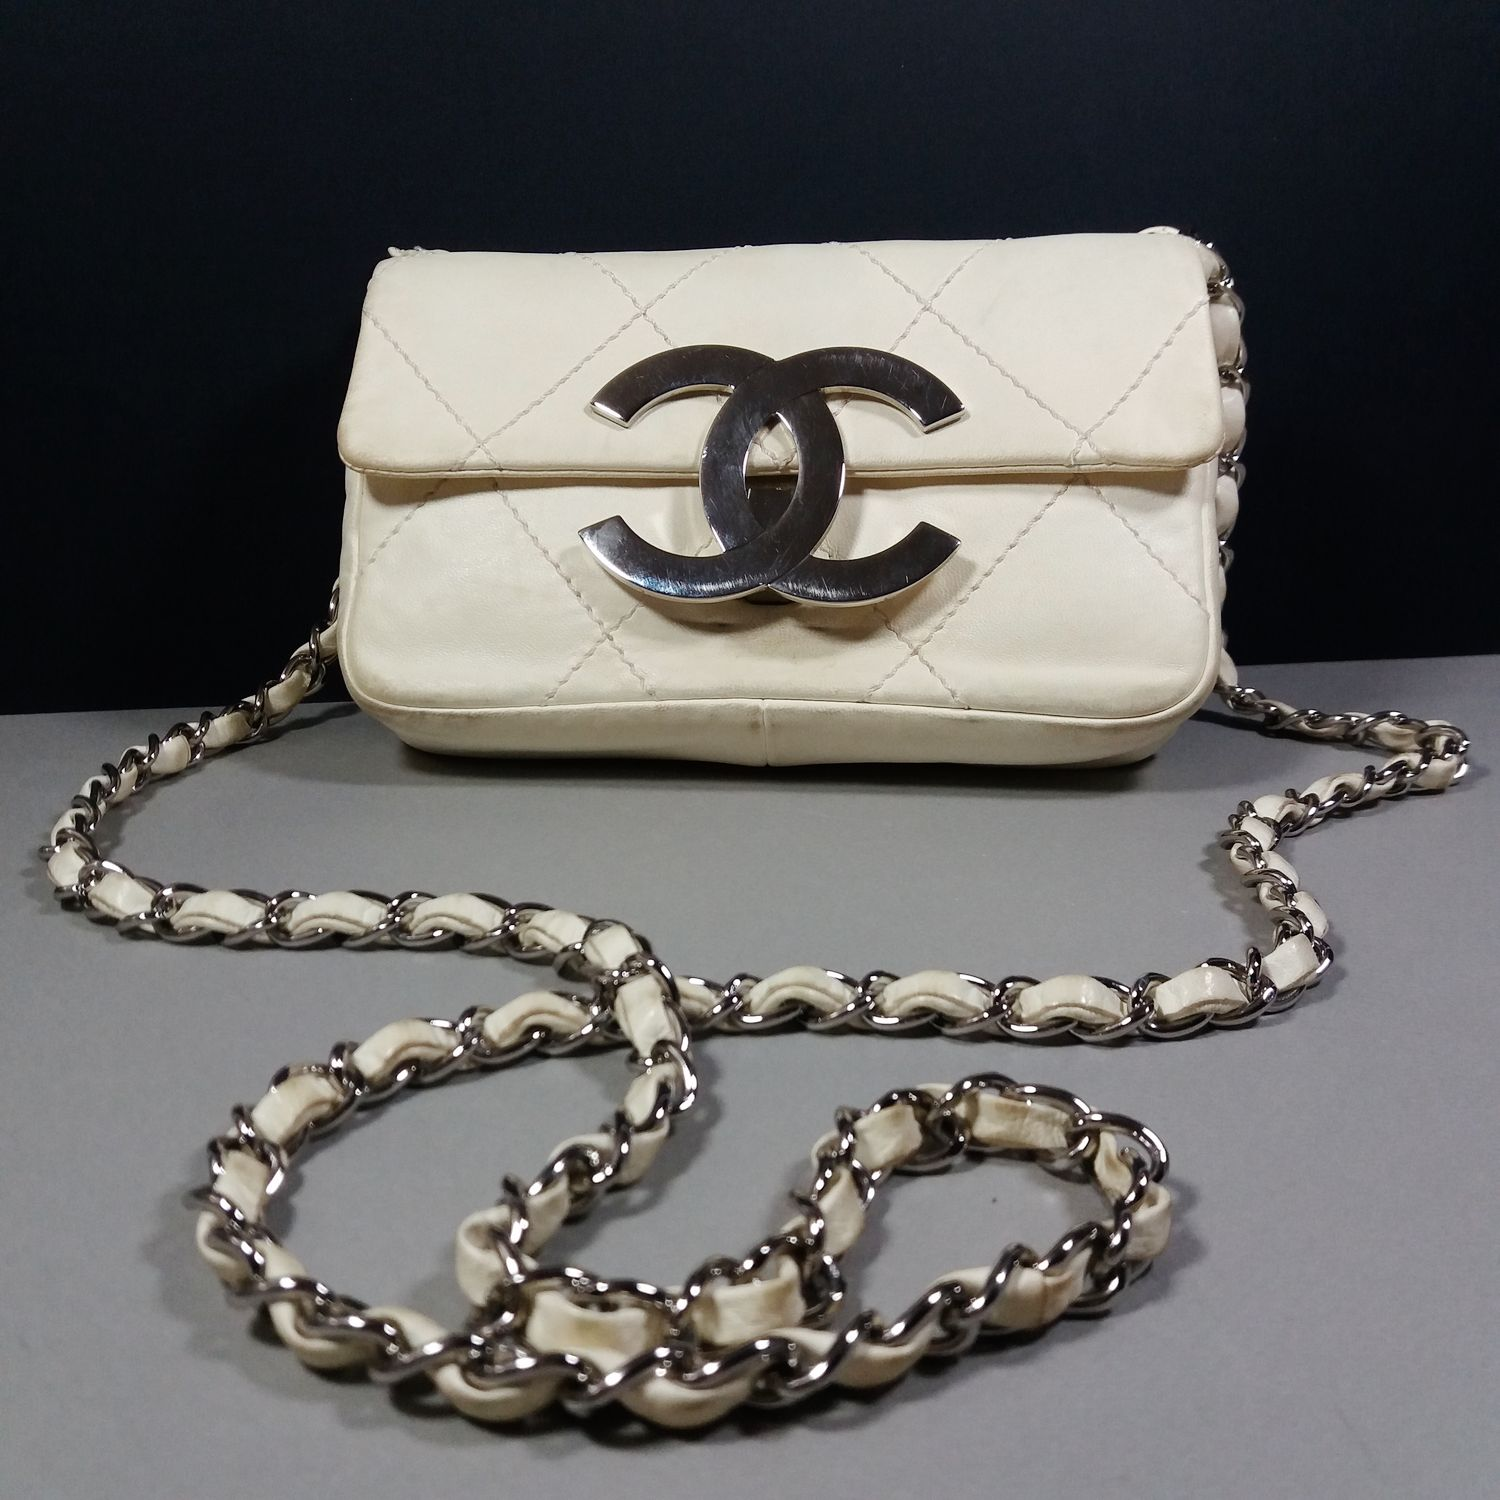 Chanel 2005 Ivory Diamond Stitched Small Flap Bag w/Big Silver CC Clasp Dustbag